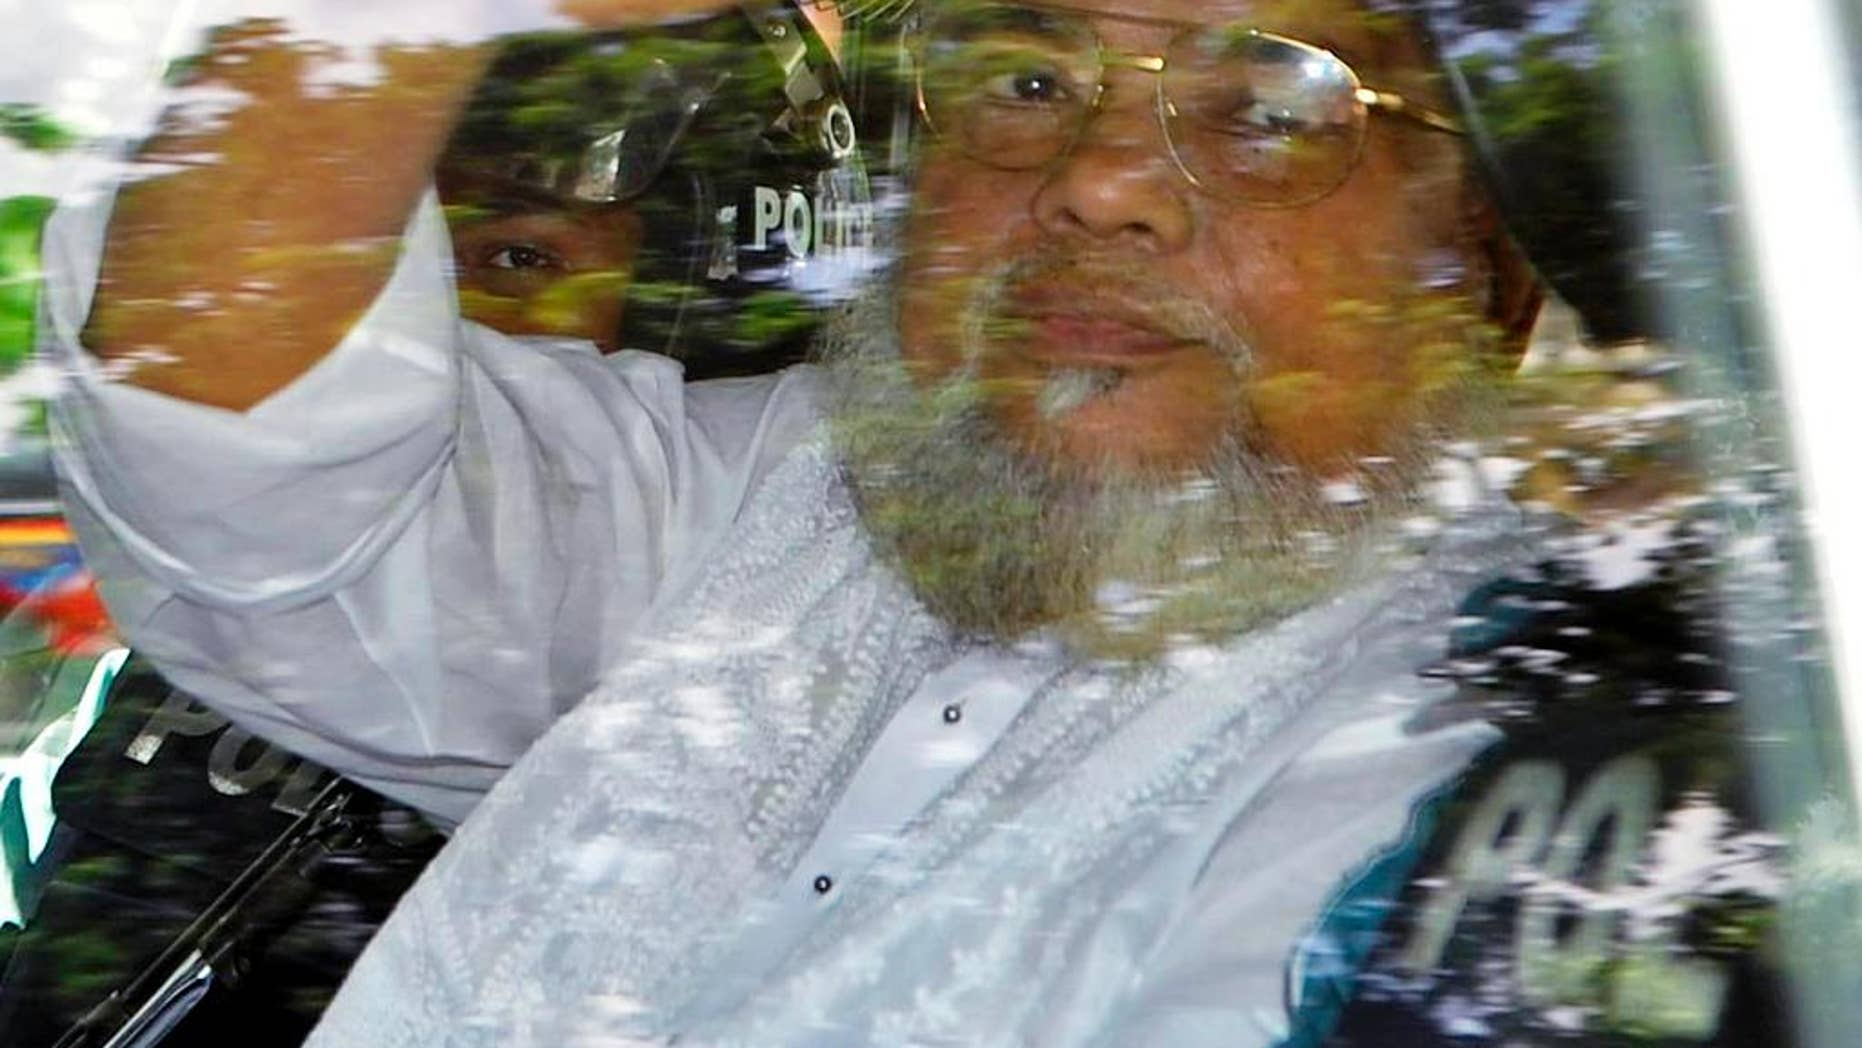 FILE - In this July 17, 2013, file photo, Ali Ahsan Mohammad Mojaheed, the secretary-general of Bangladesh's Jamaat-e-Islami party, waves from a police vehicle as he is brought to court in Dhaka, Bangladesh. Bangladesh's Supreme Court on Tuesday, June 16, 2015, upheld his death sentence for war crimes and crimes against humanity during the country's independence war against Pakistan in 1971. (AP Photo, File)